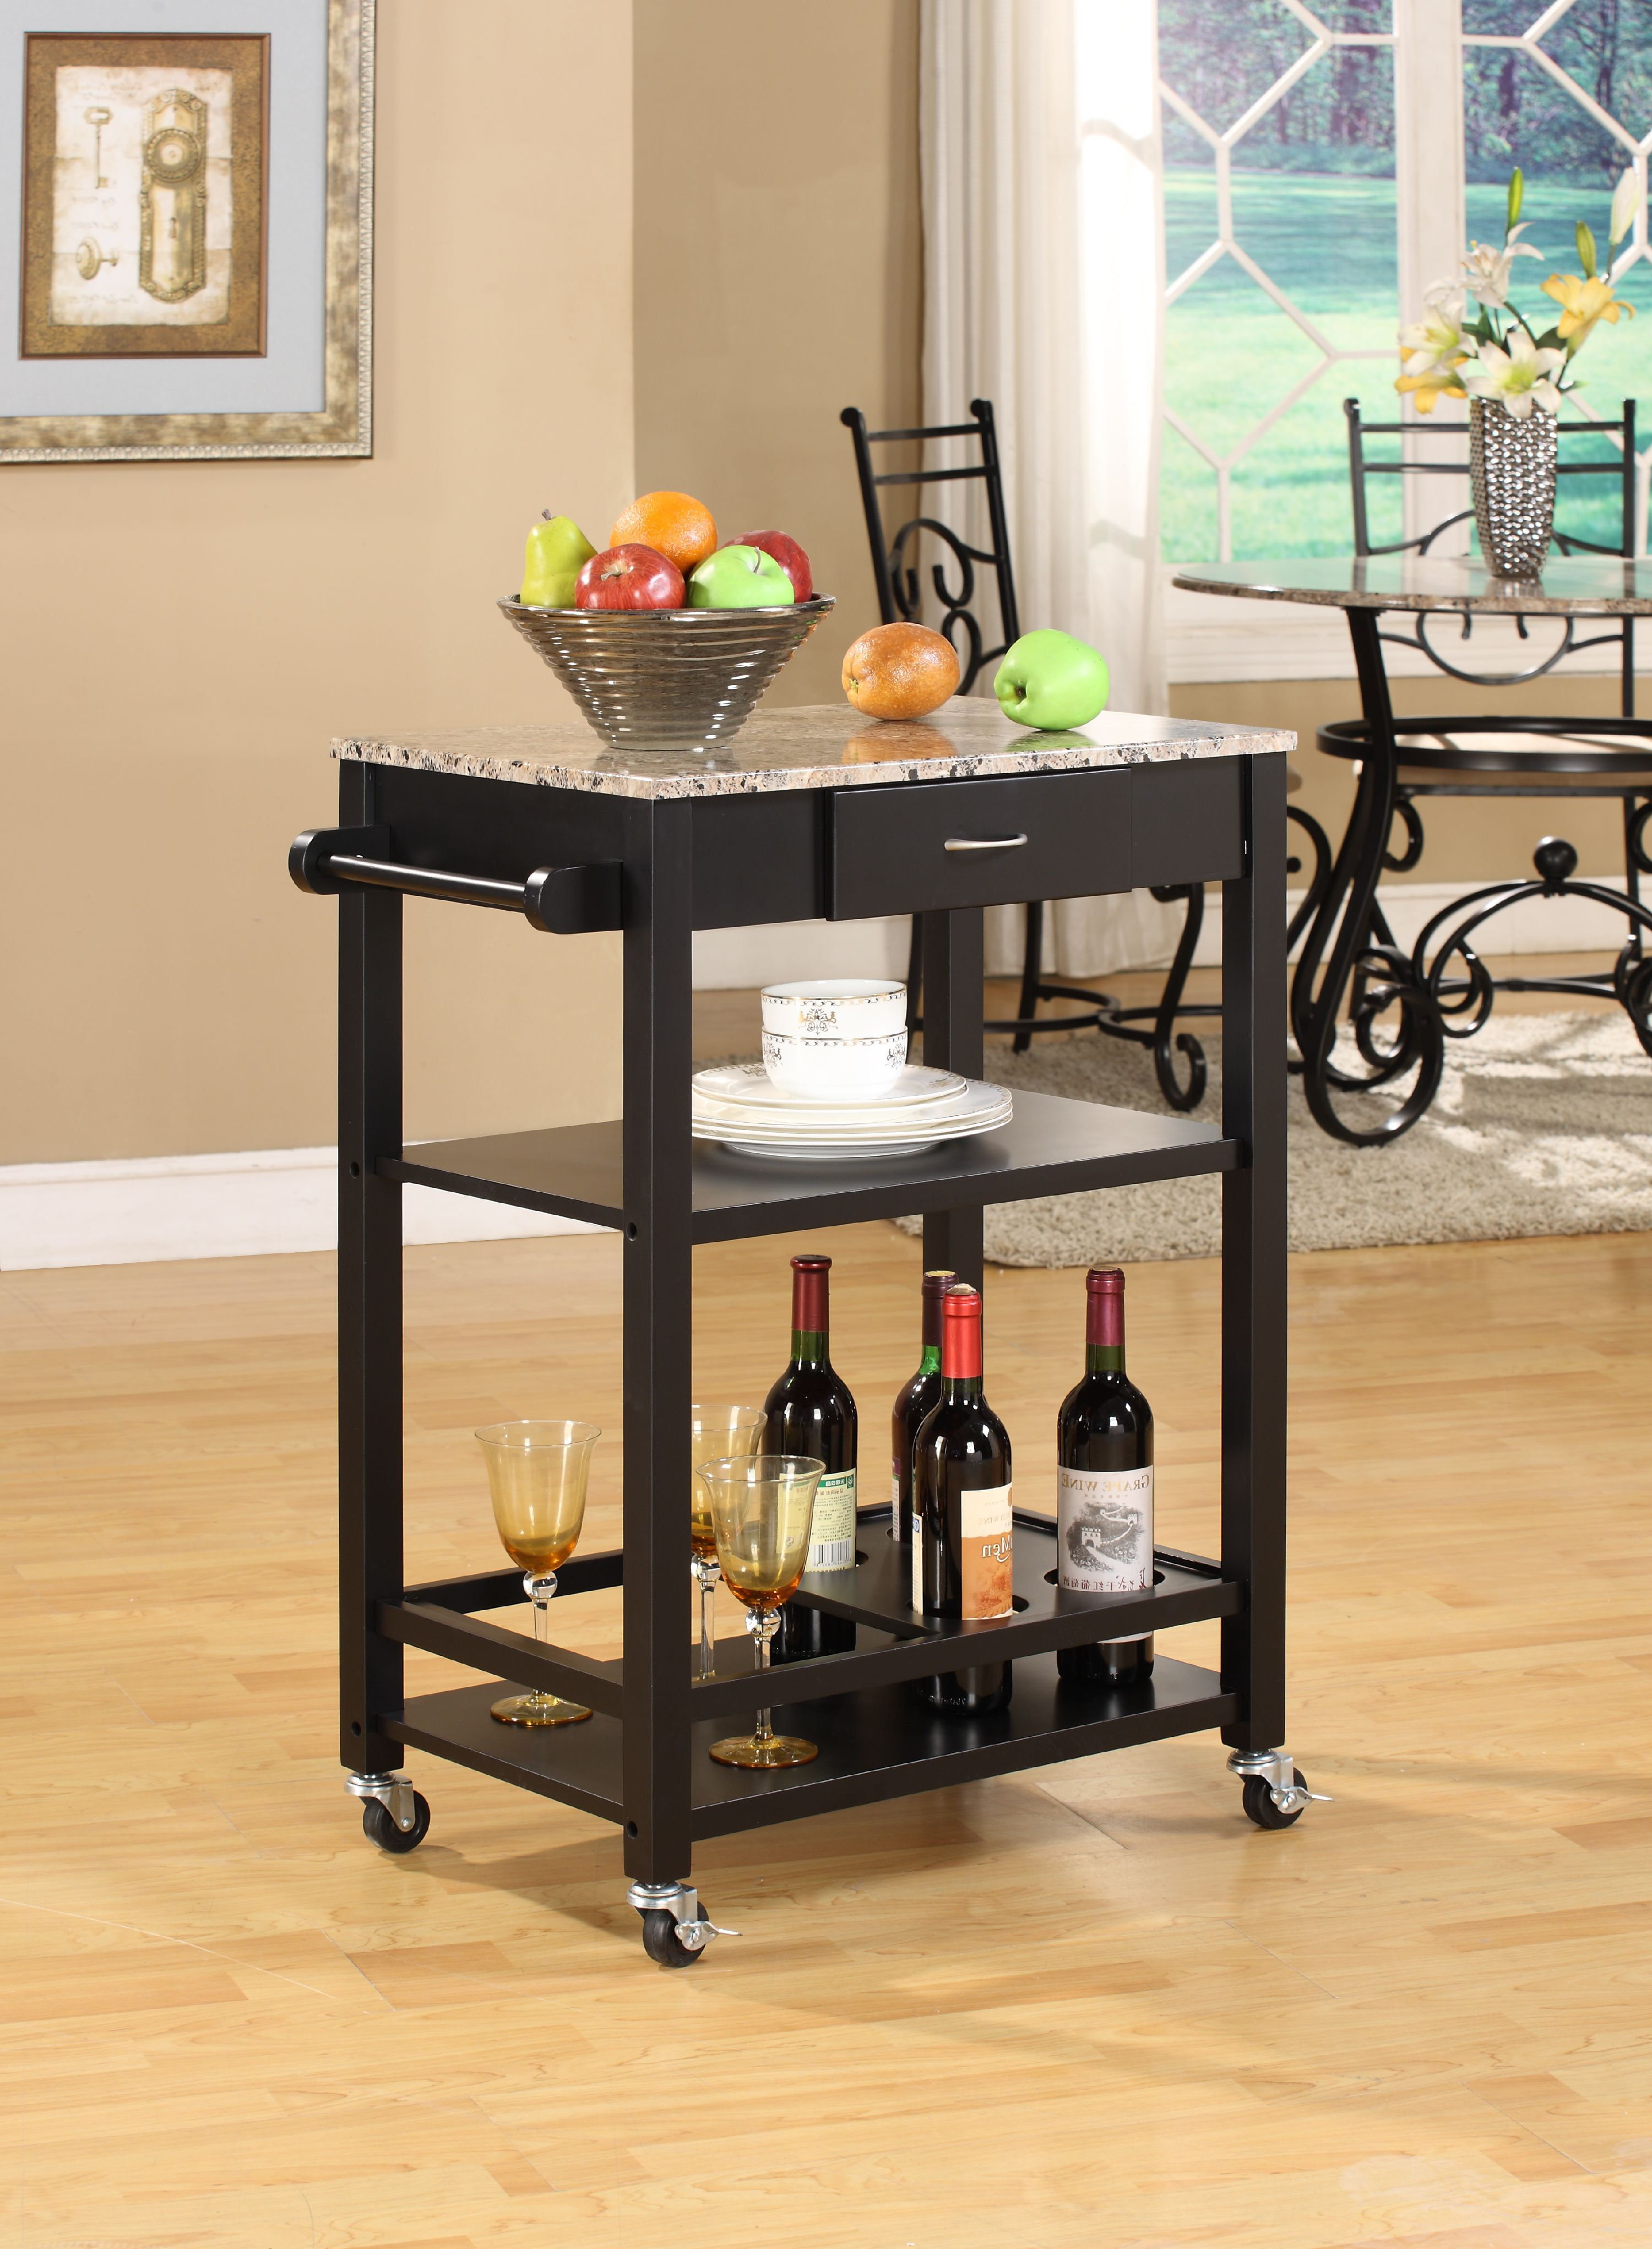 Black & Marble Wood Contemporary Kitchen Serving Cart With Storage Drawer & Shelves by